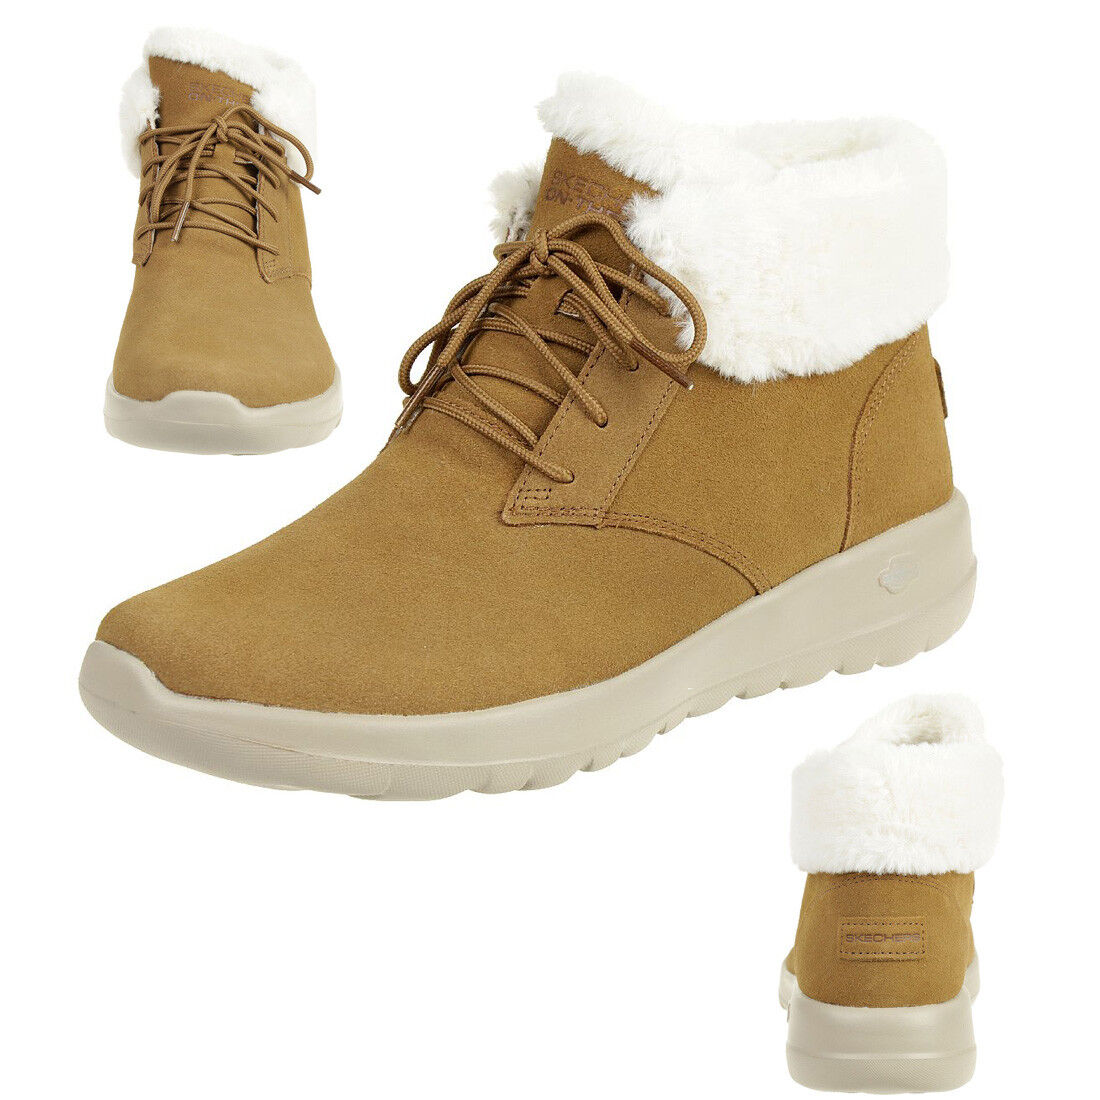 Skechers on the go Joy Lush Boots Women's Winter shoes Padded Csnt